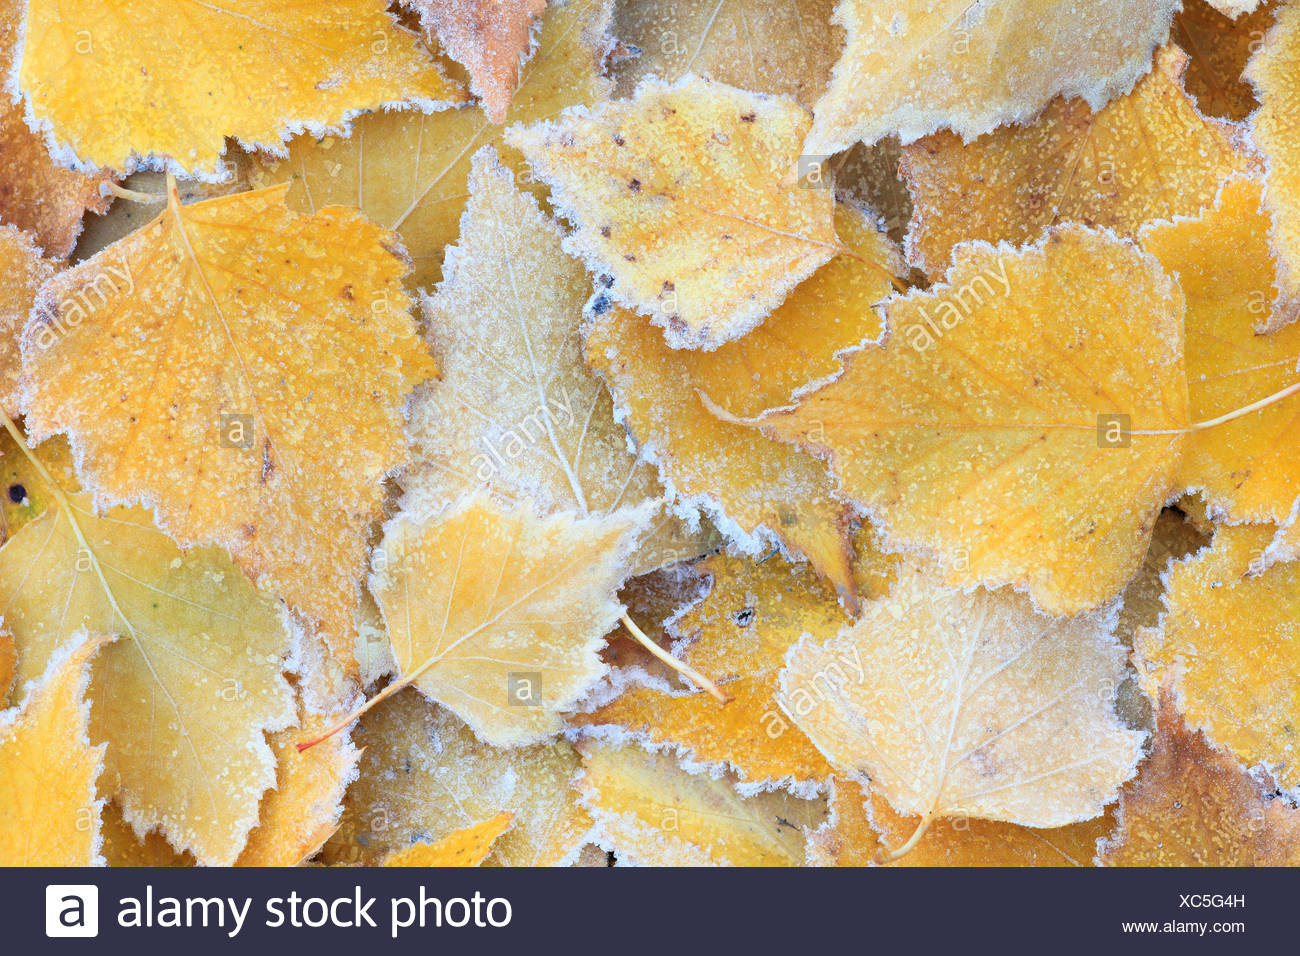 birch leaves with hoar frost on the ground, Switzerland - Stock Image